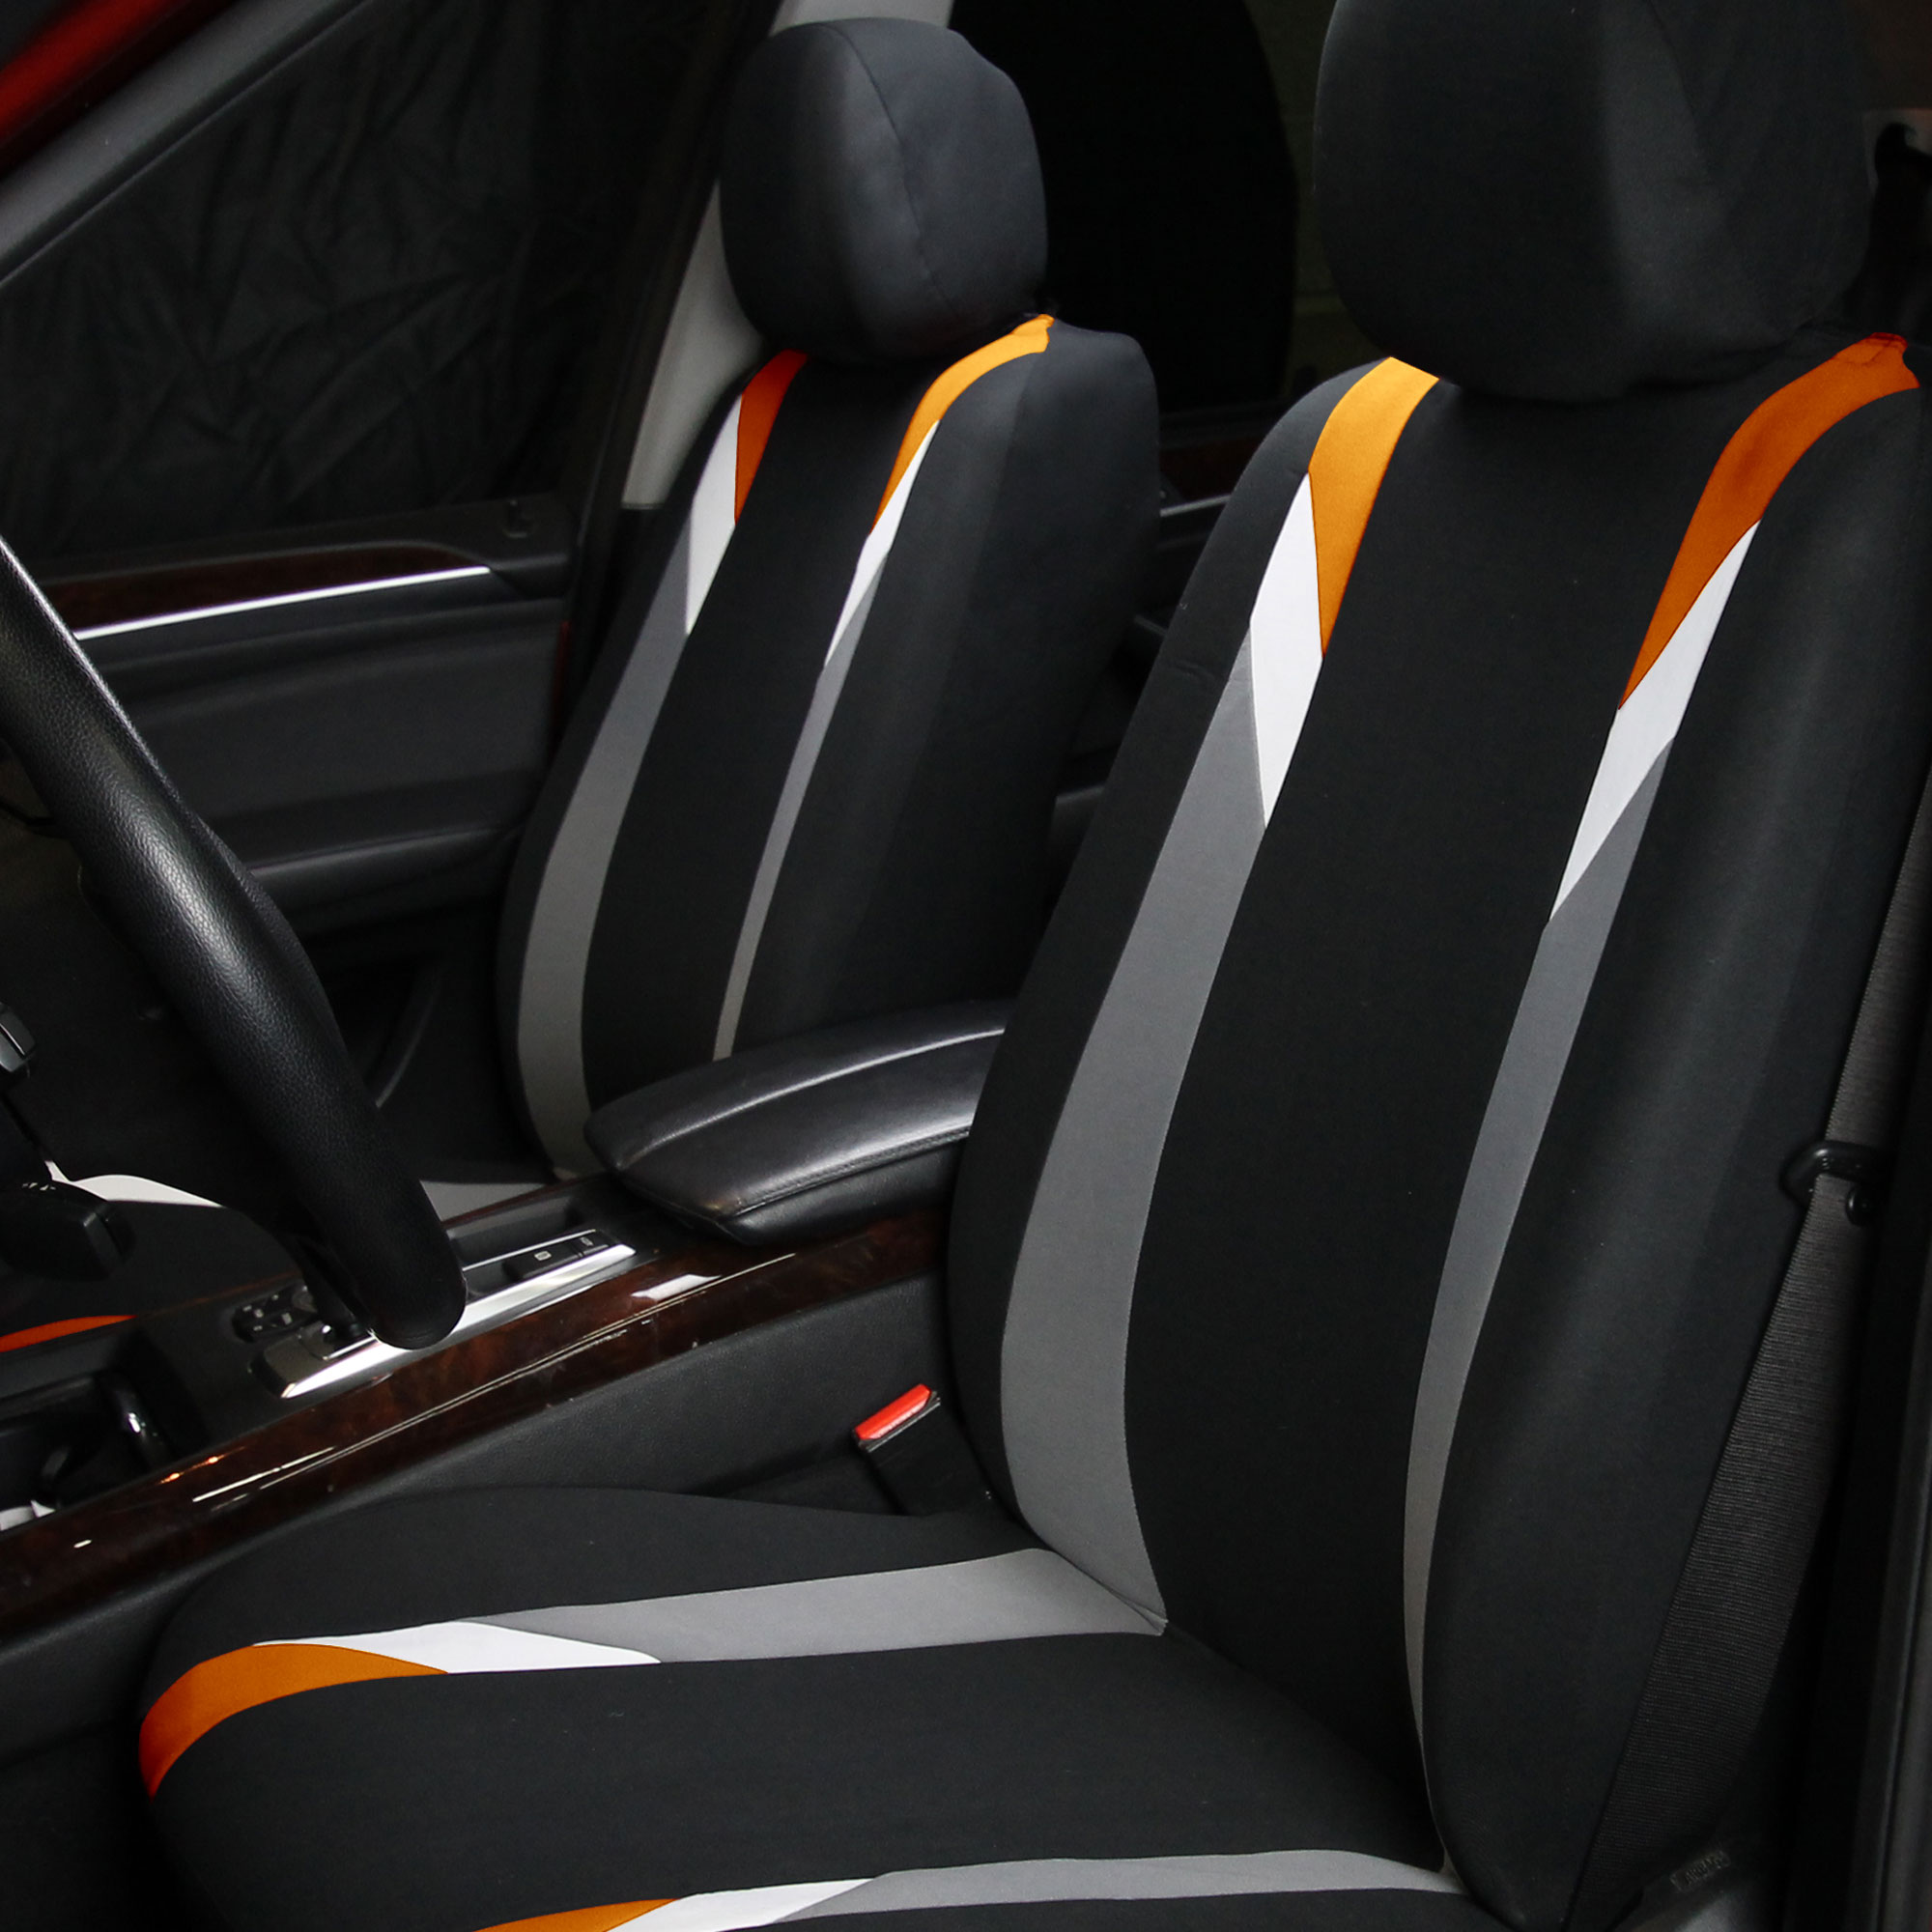 Car Seat Cover Set For Auto Sporty Orange W 3PC Carpet